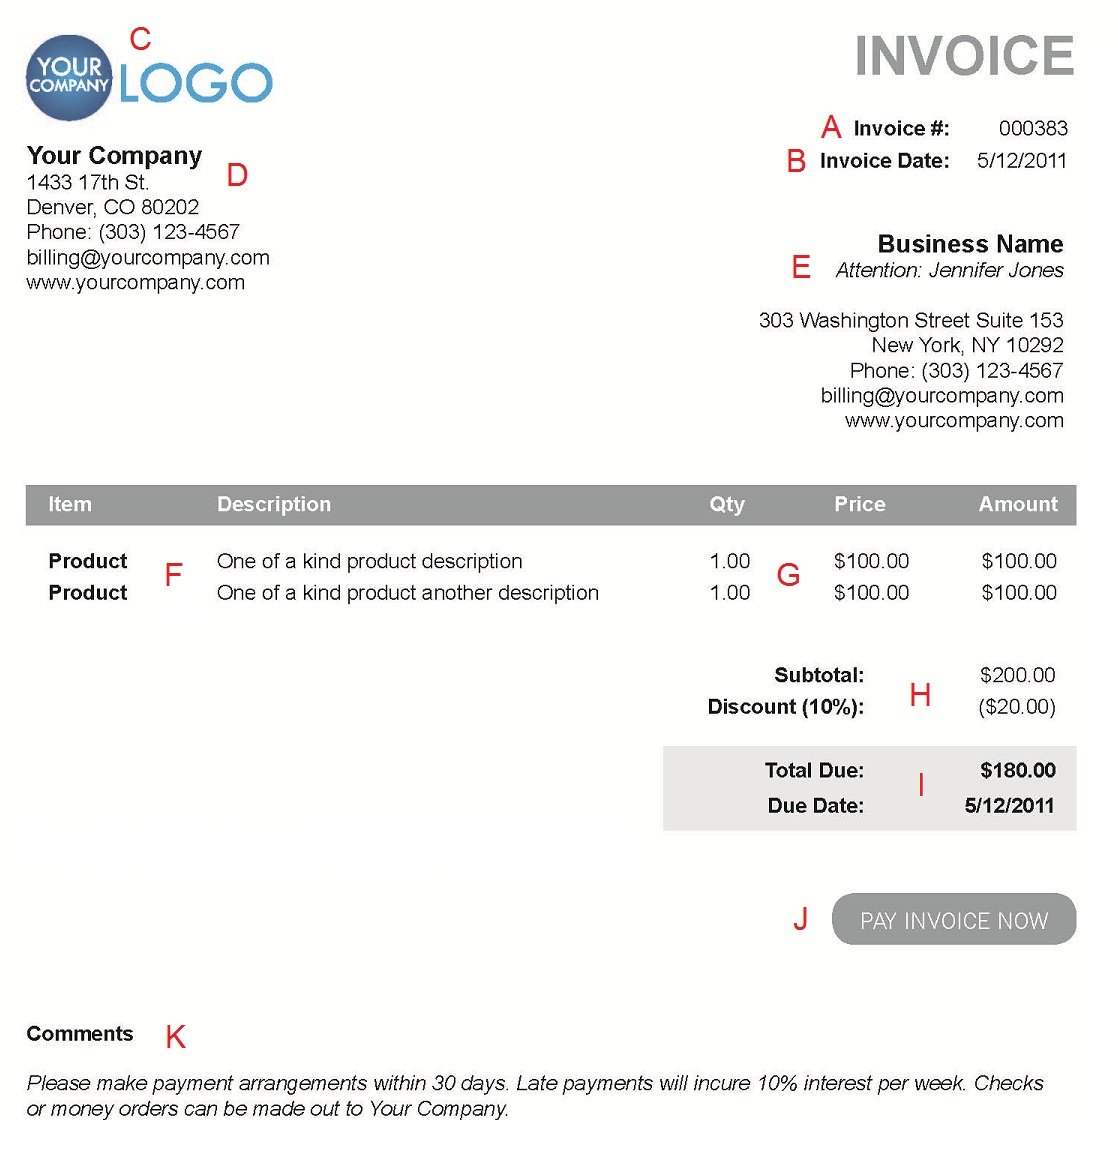 Aldiablosus  Winsome The  Different Sections Of An Electronic Payment Invoice With Goodlooking A  With Astonishing Auto Invoice Also Invoice And Receipt In Addition Invoice Templates For Mac And Painting Invoice Template As Well As Difference Between Invoice And Msrp Additionally Free Printable Invoice Forms From Paysimplecom With Aldiablosus  Goodlooking The  Different Sections Of An Electronic Payment Invoice With Astonishing A  And Winsome Auto Invoice Also Invoice And Receipt In Addition Invoice Templates For Mac From Paysimplecom